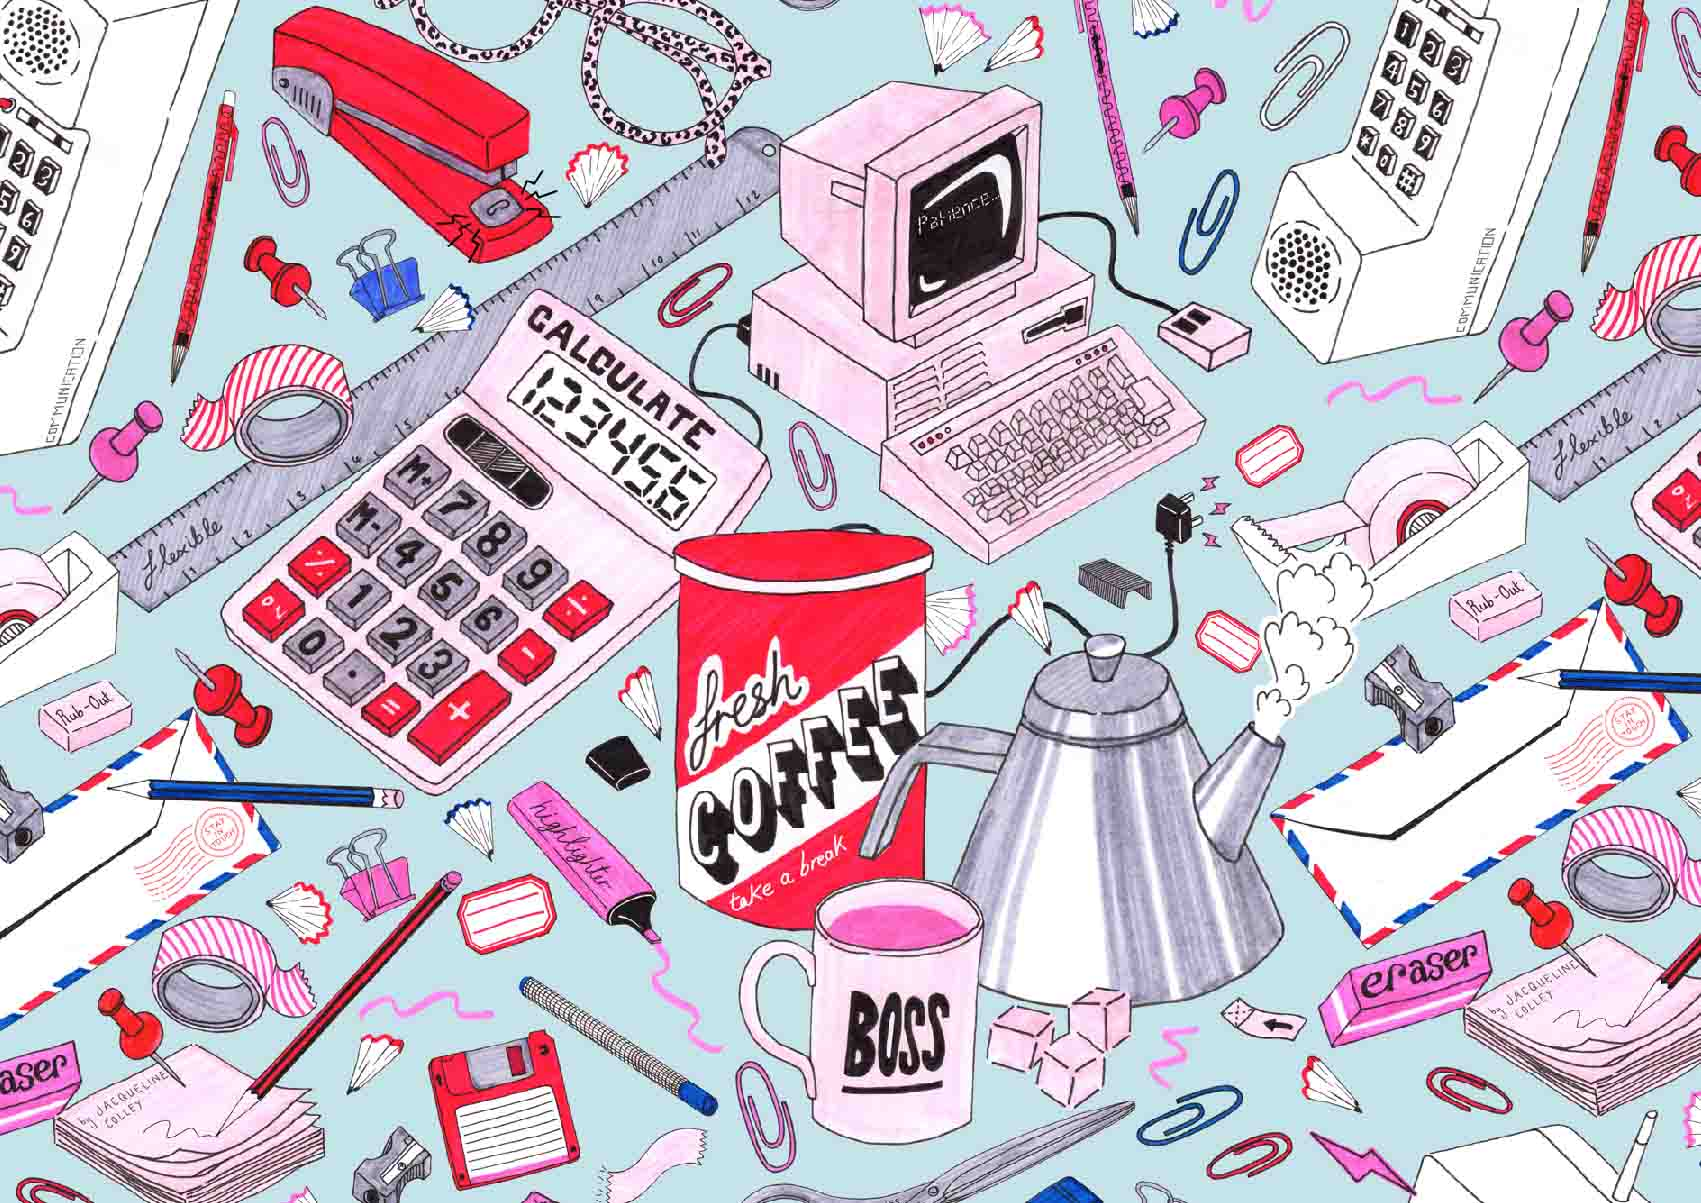 1980's-office-accessories-collection-Illustrated-by-Jacqueline-Colley.jpg